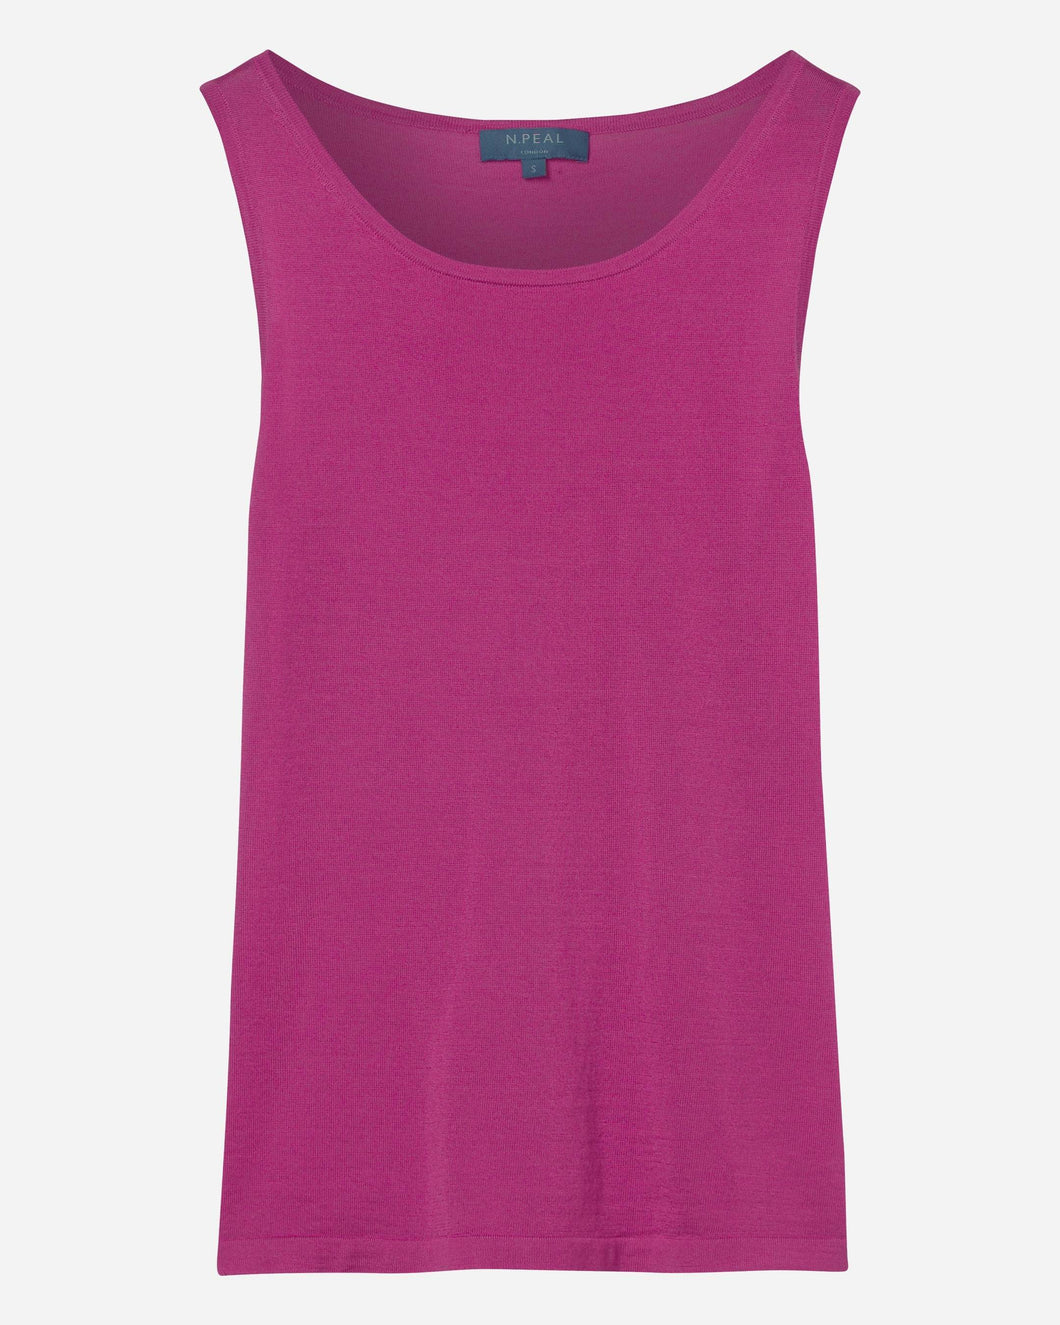 Superfine Cashmere Shell Top Purple Pink